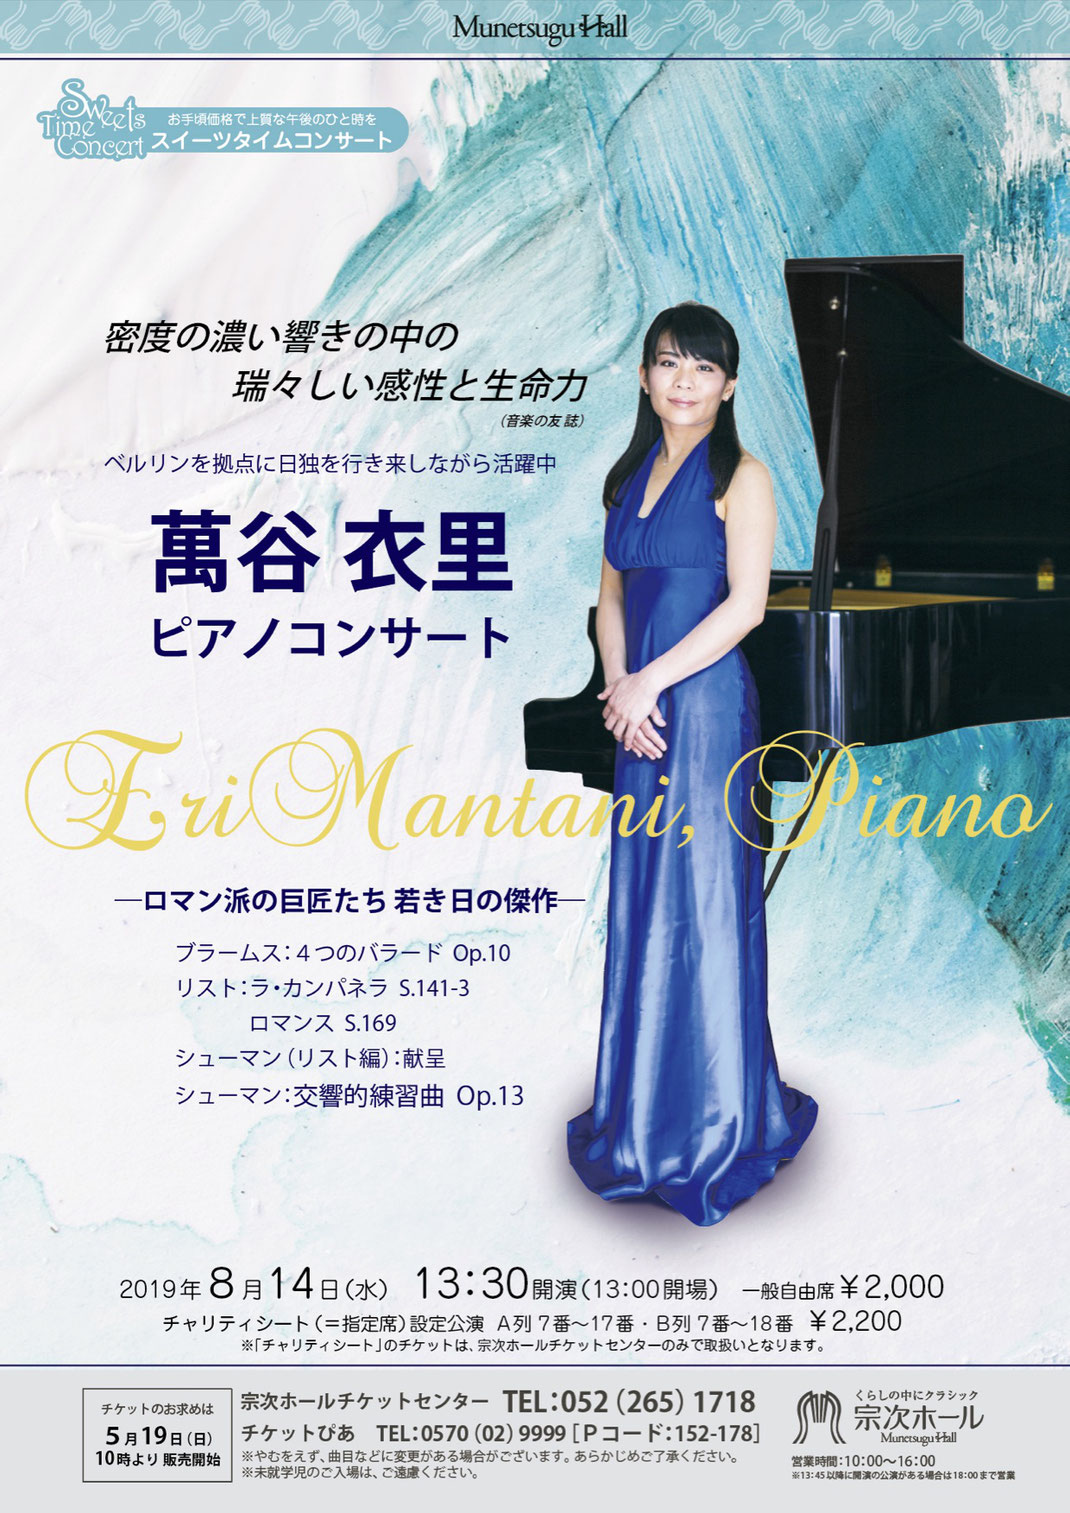 20190814 Munetsugu Hall Flyer